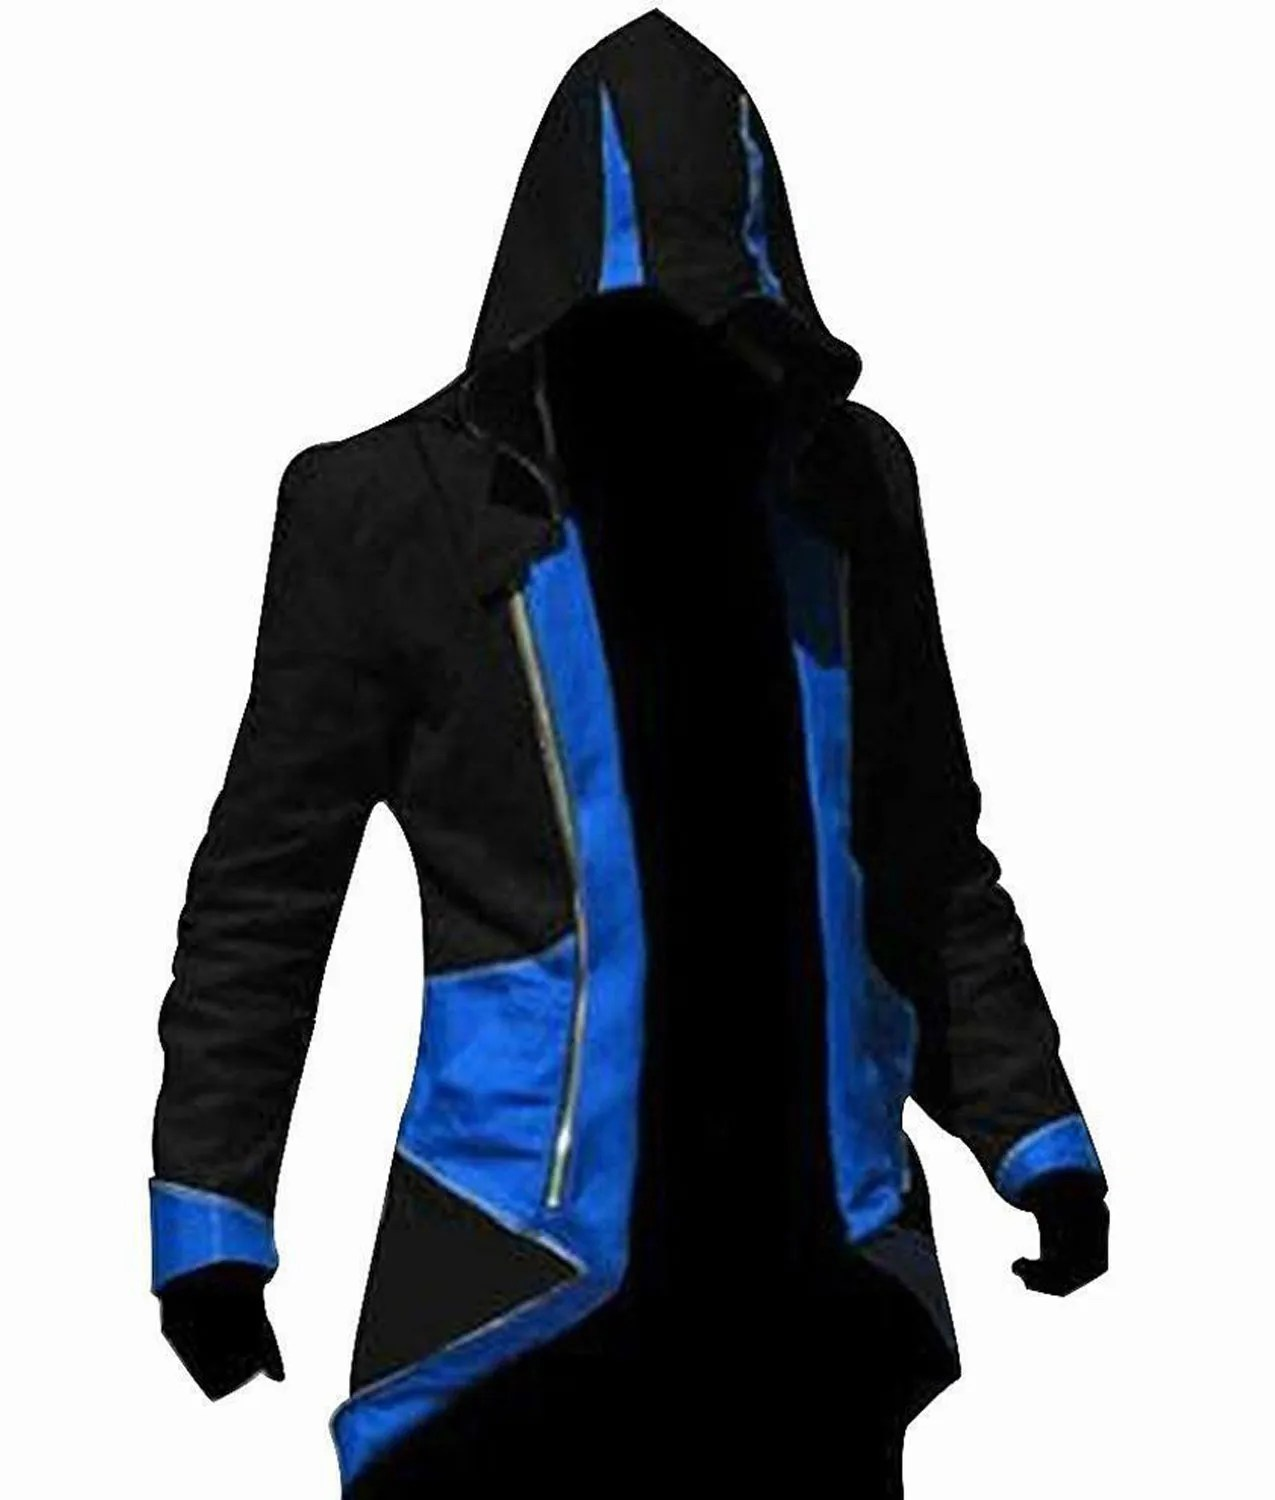 assassins-creed-3-connor-kenway-tailcoat